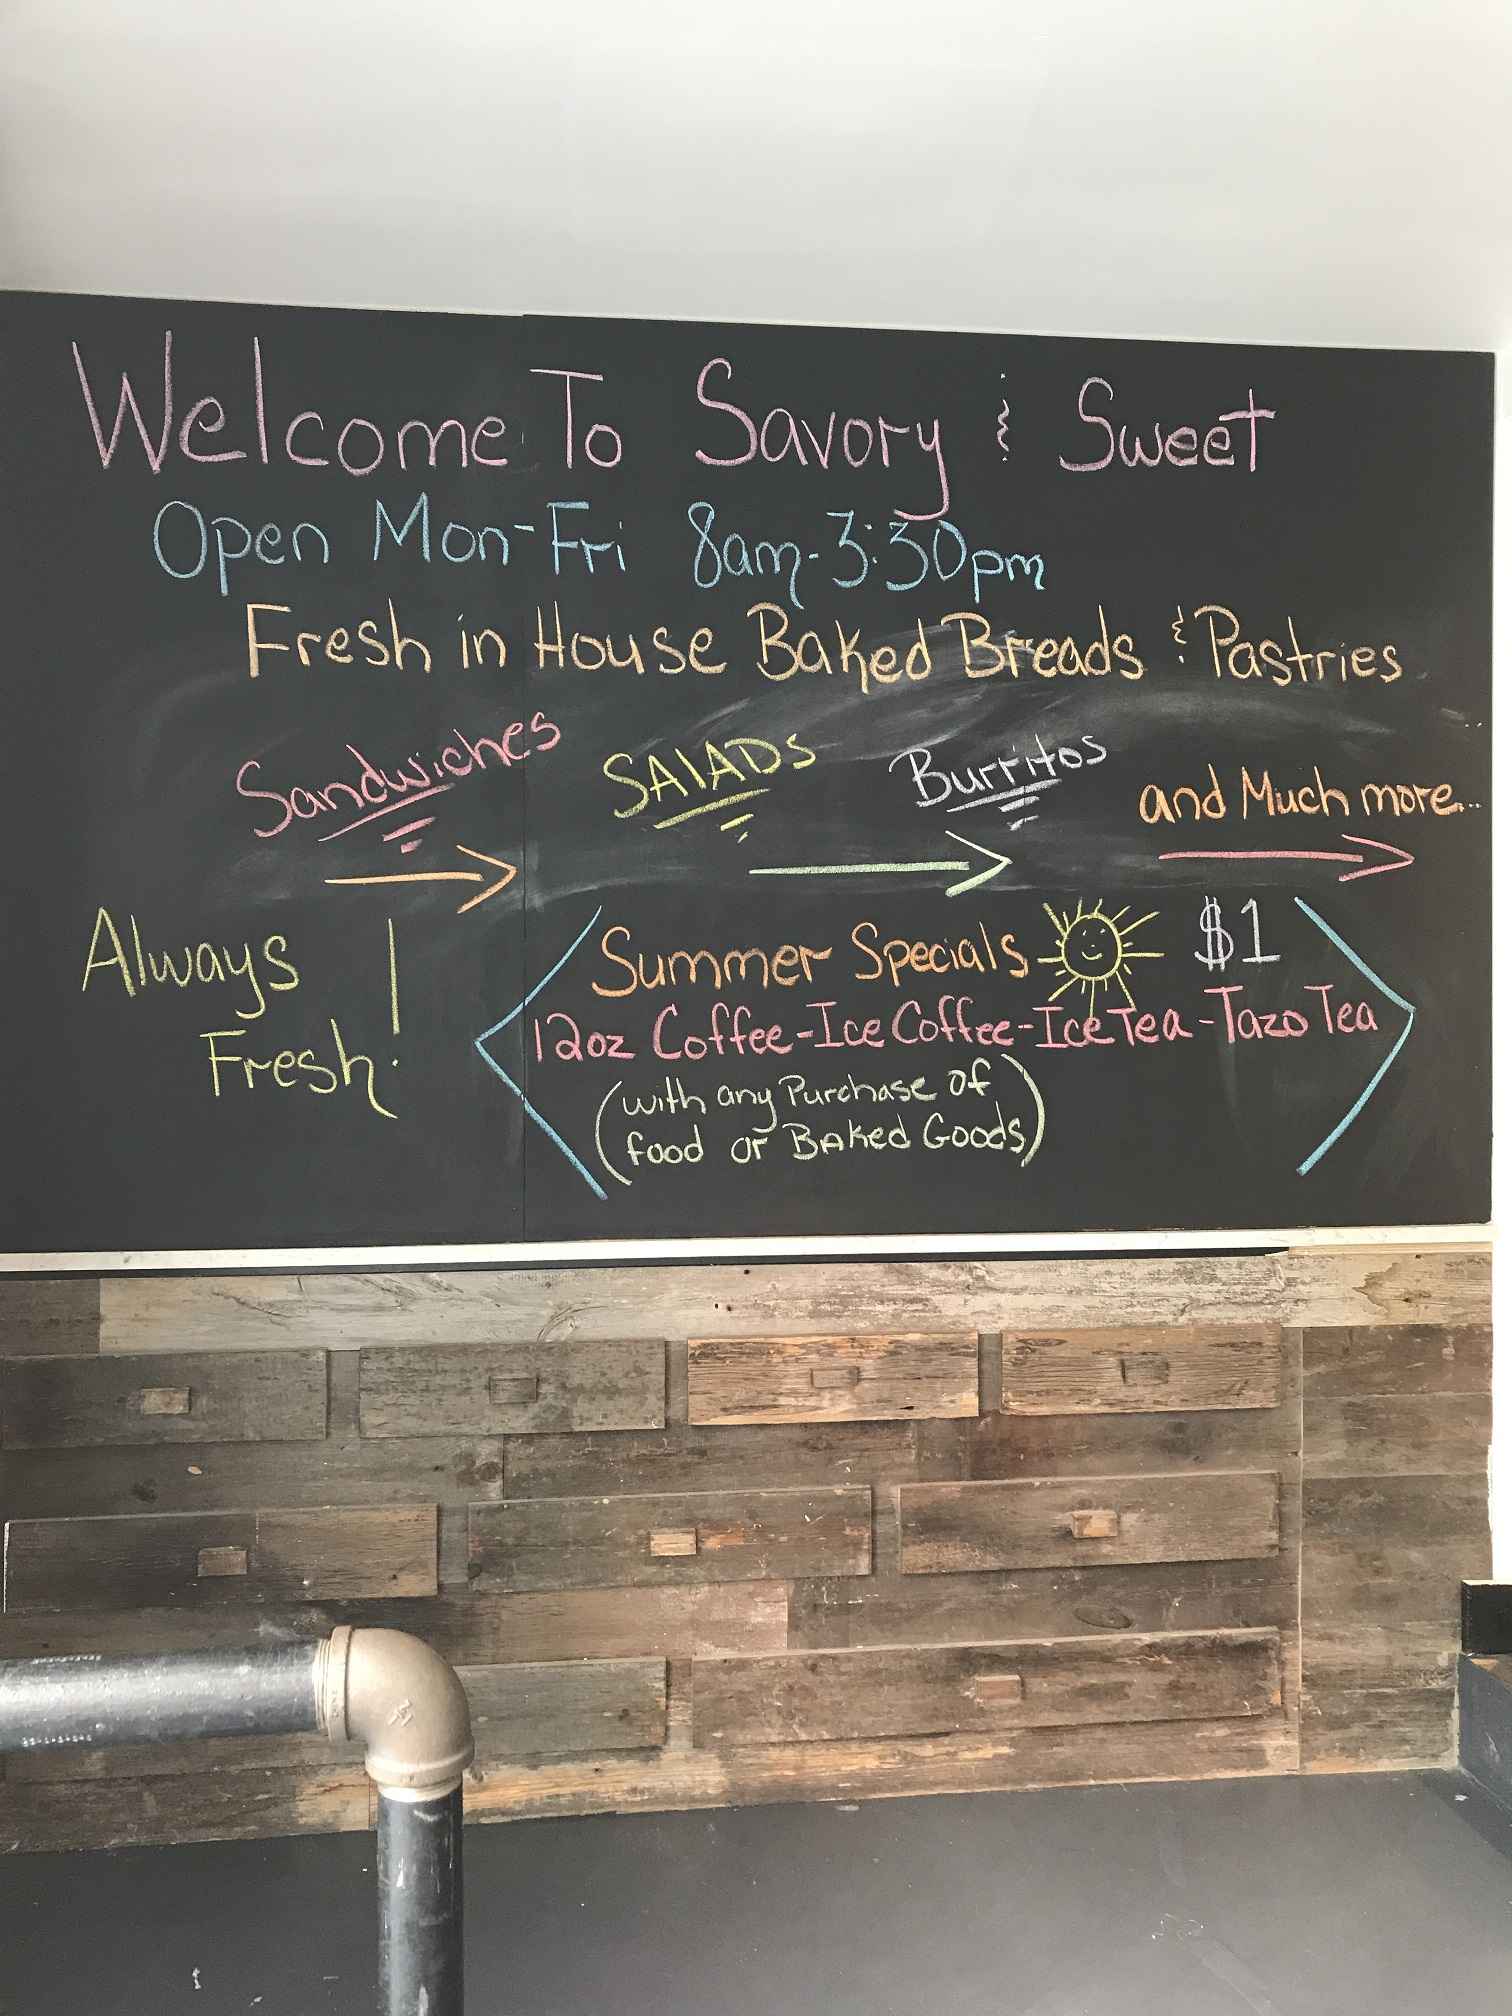 Savory & Sweet Café Daily Specials: Drop Off-Site Catering